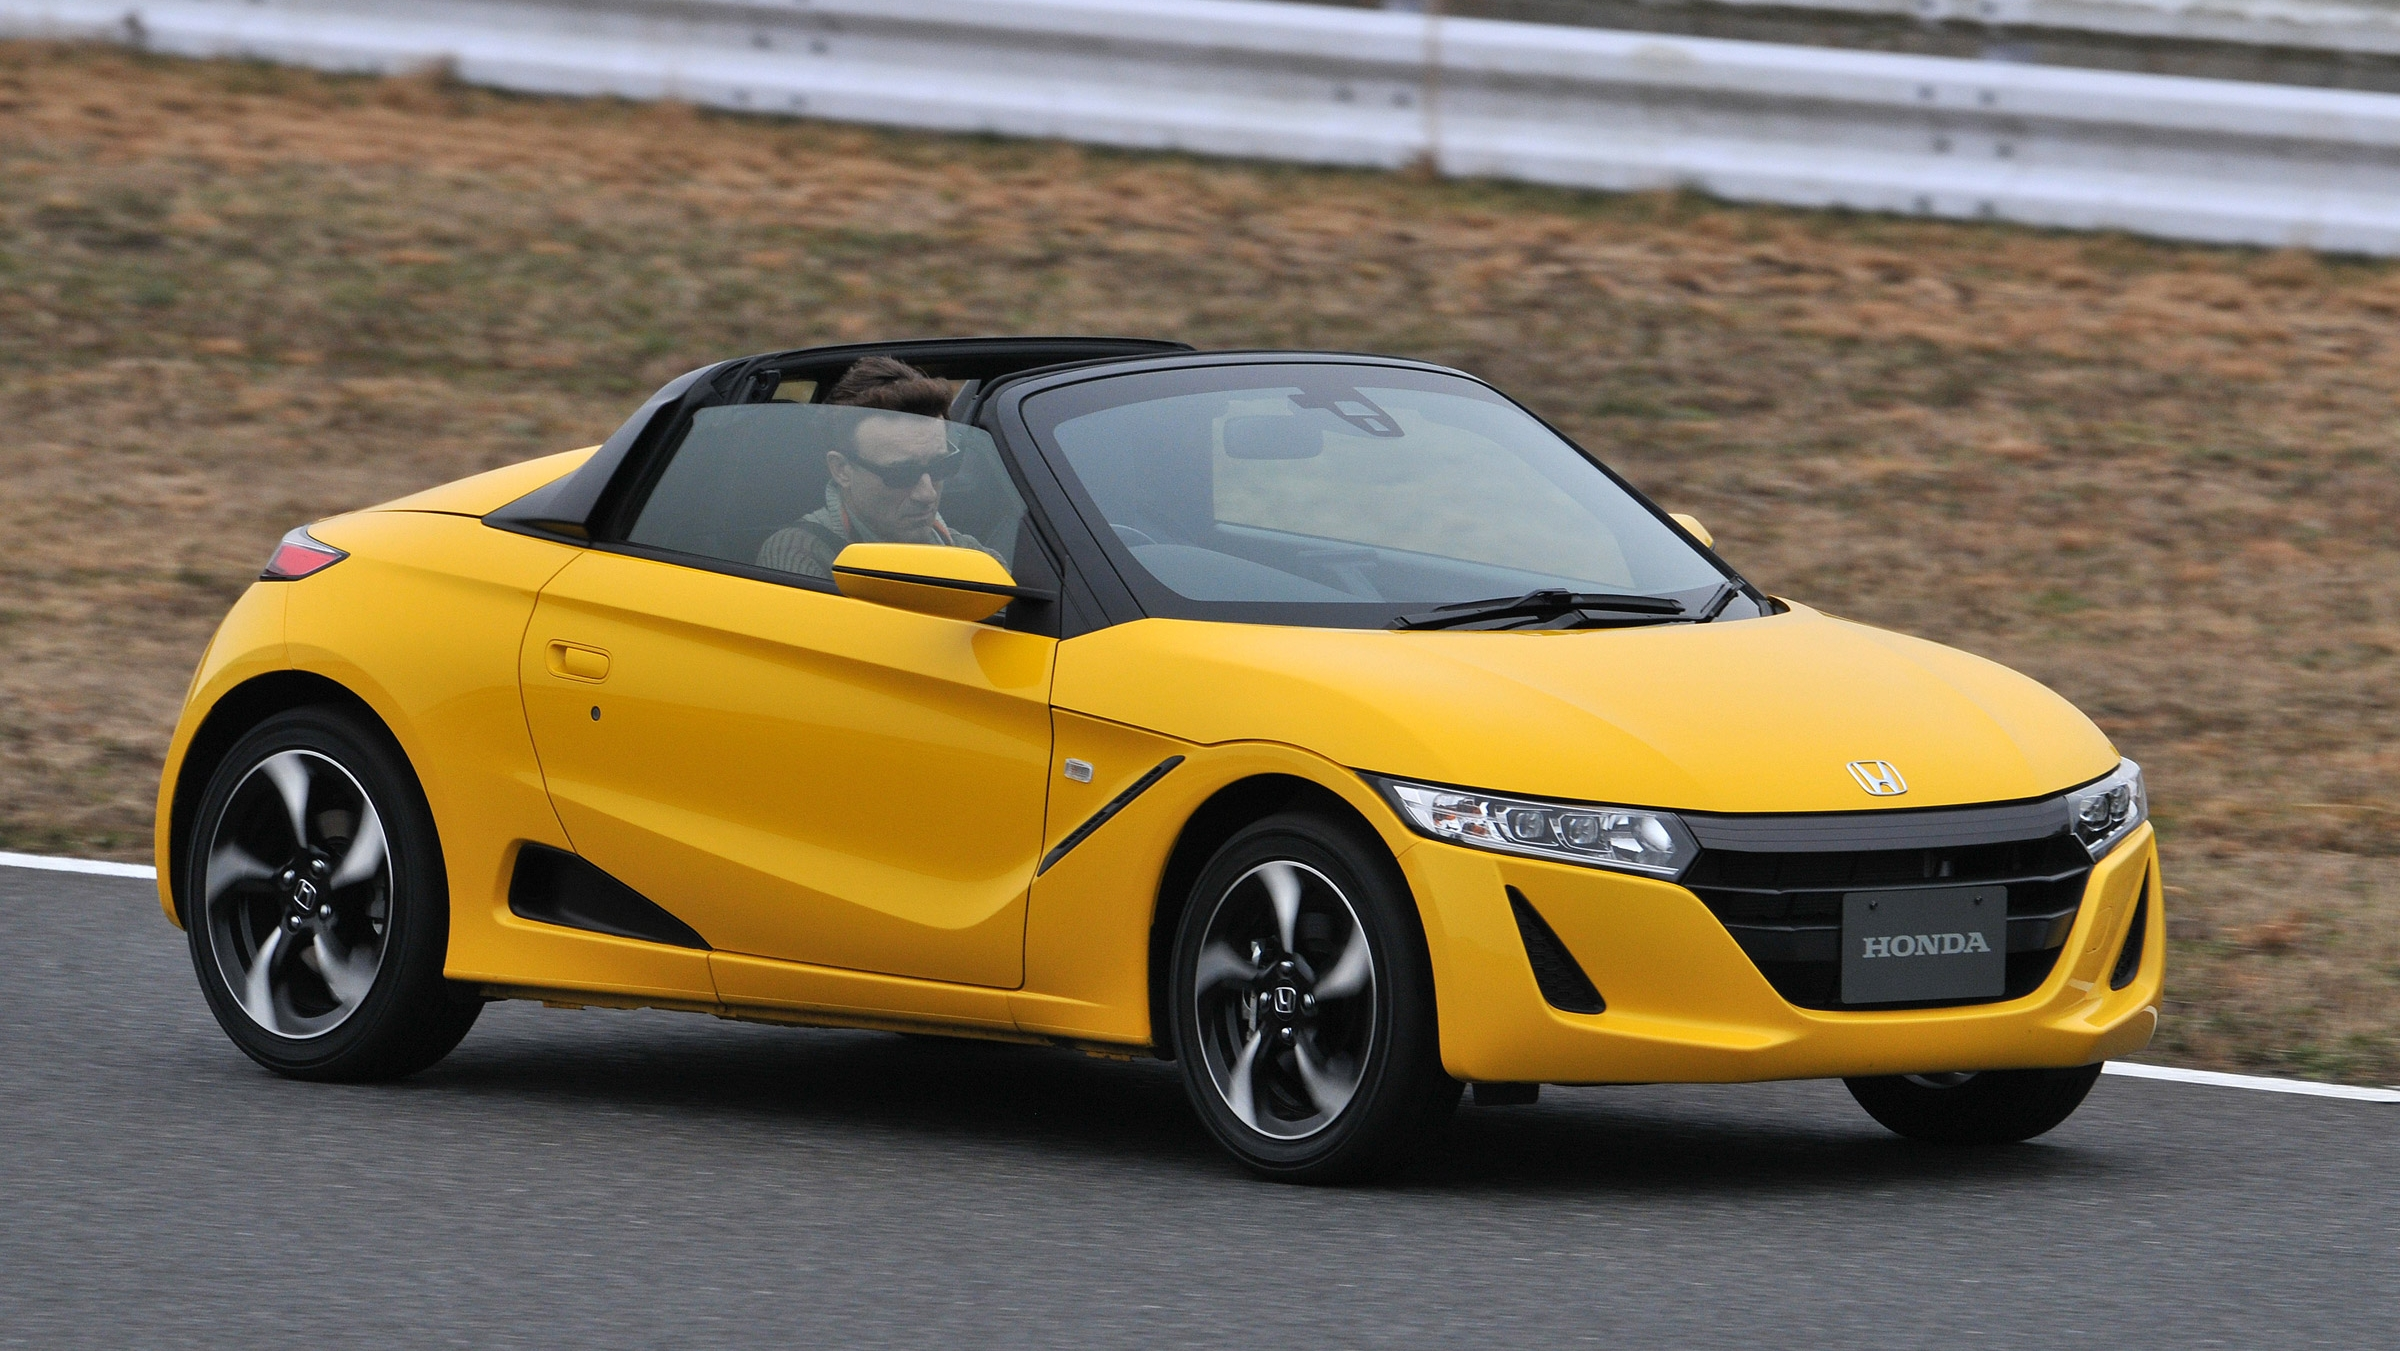 Honda S660 Latest News Reviews Specifications Prices Photos And